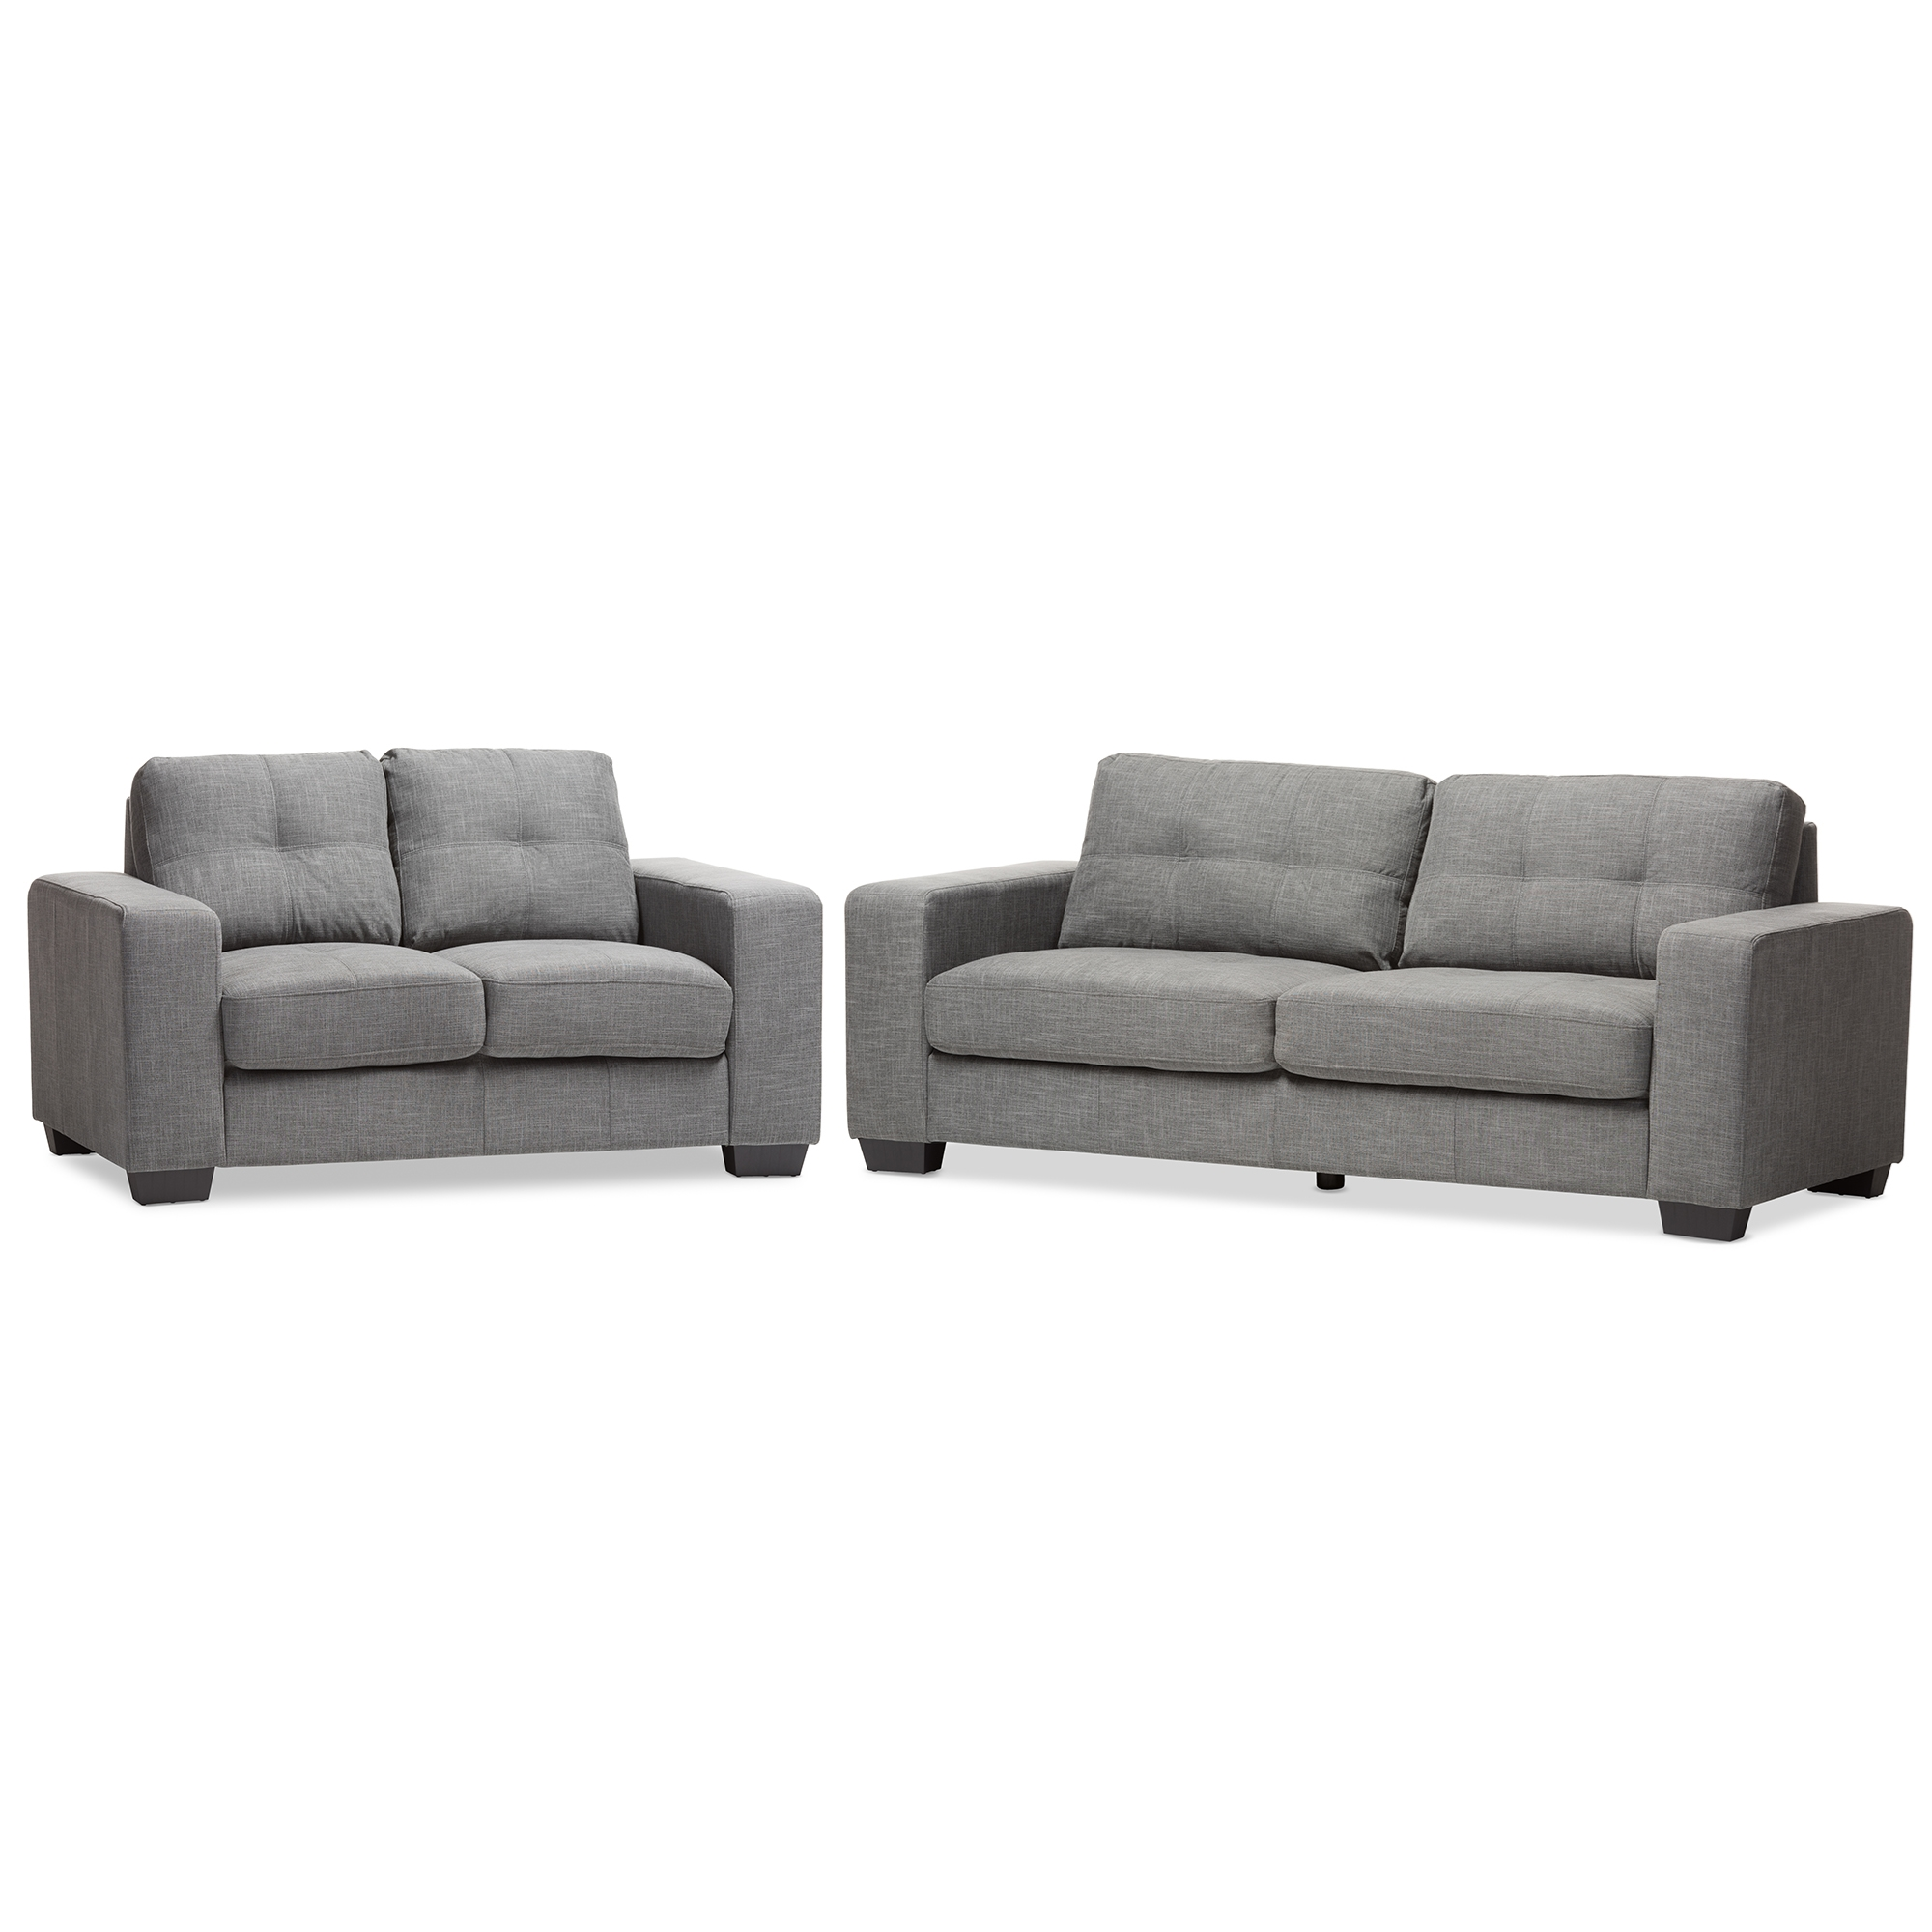 Baxton Studio Westerlund Modern And Contemporary Shadow Gray Fabric  Upholstered 2 Piece Loveseat And Sofa ...